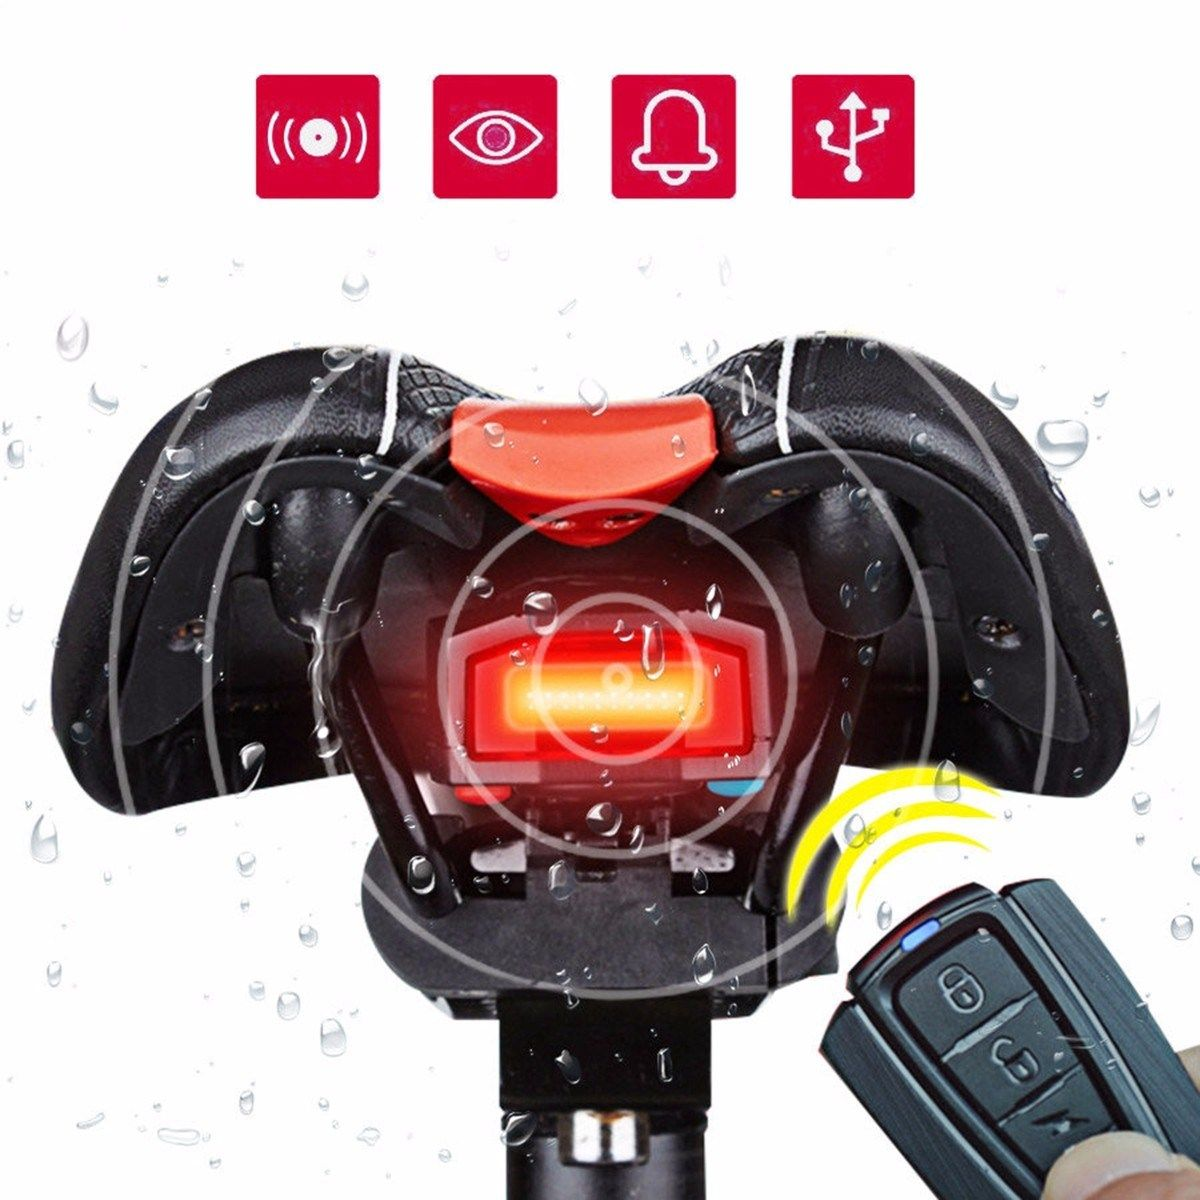 New 3 in 1 Bicycle Wireless Smart Bell COB Tailight Bike Remote Control Alarm Lock Fixed Position USB Charging Bike Rear Light